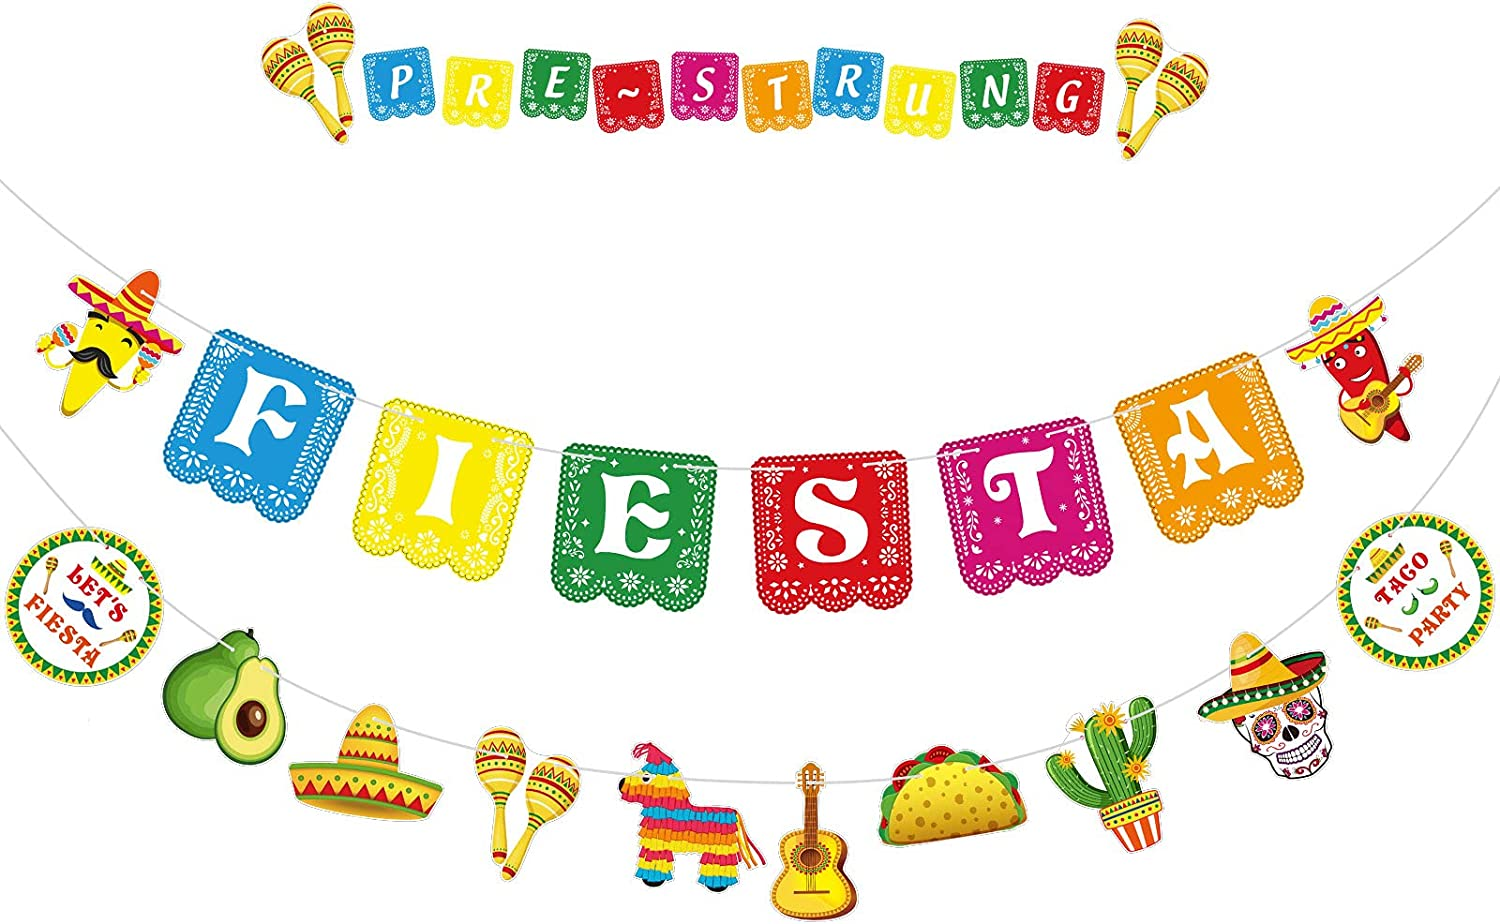 Mexican Party Supplies Sign Banner Garland Fiesta Party Decoration Cinco De Mayo Backdrops Ceiling Hanging Card Tissue Decorations for Mexican Festival Fiesta Taco Theme Birthday, 18 Fiesta Patterns